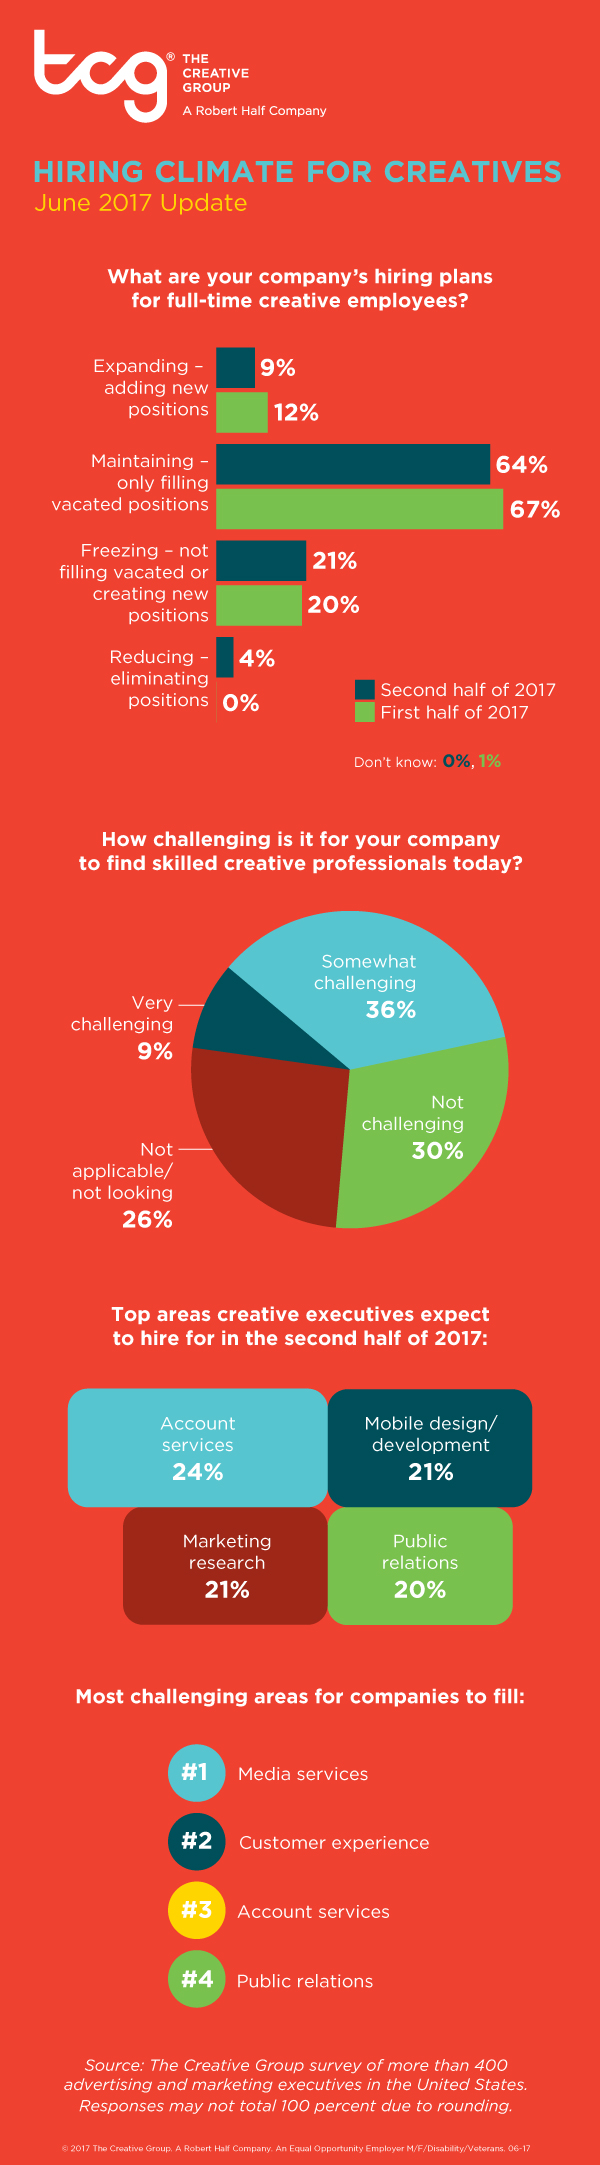 The Creative Group Hiring Climate Infographic